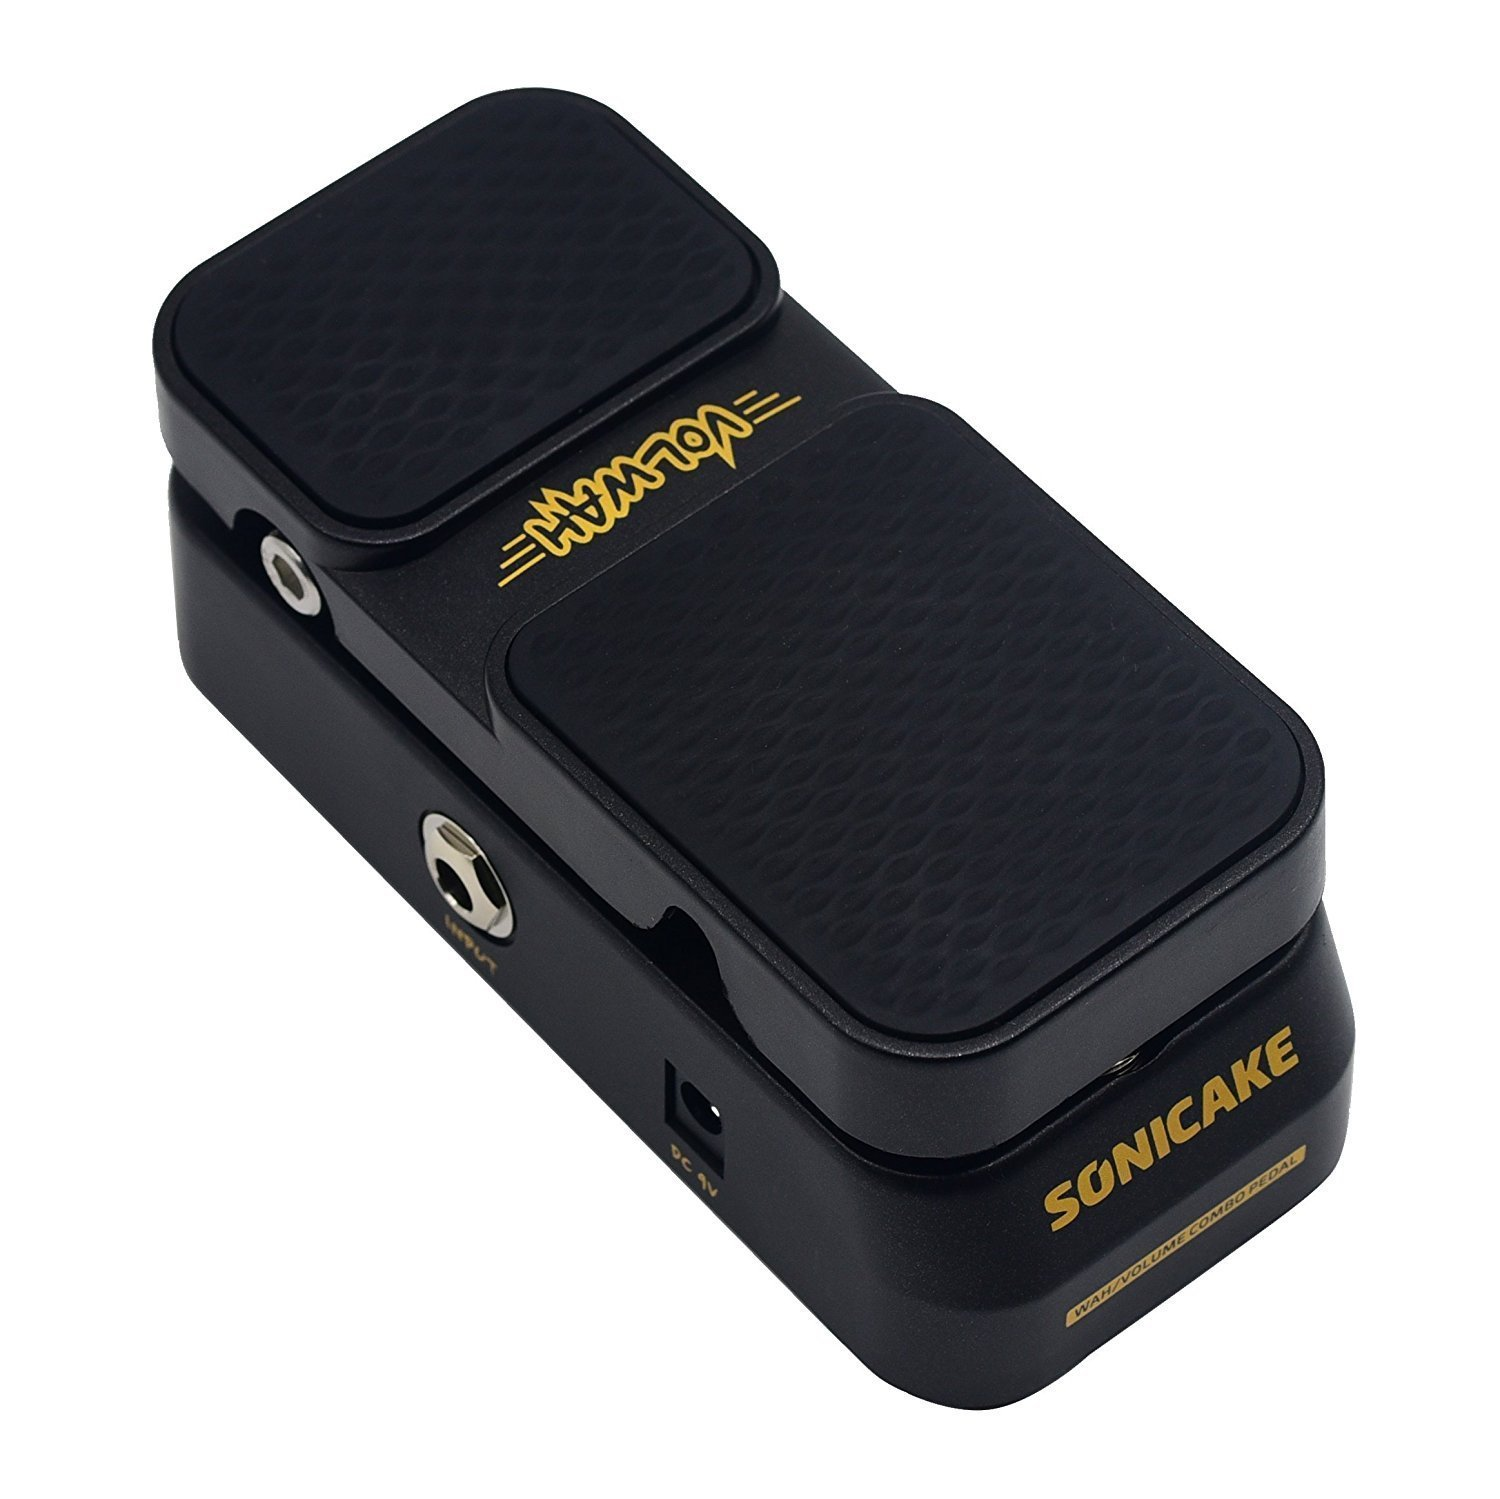 Sonicake Volwah Active Volume Wah Guitar Effects Pedal